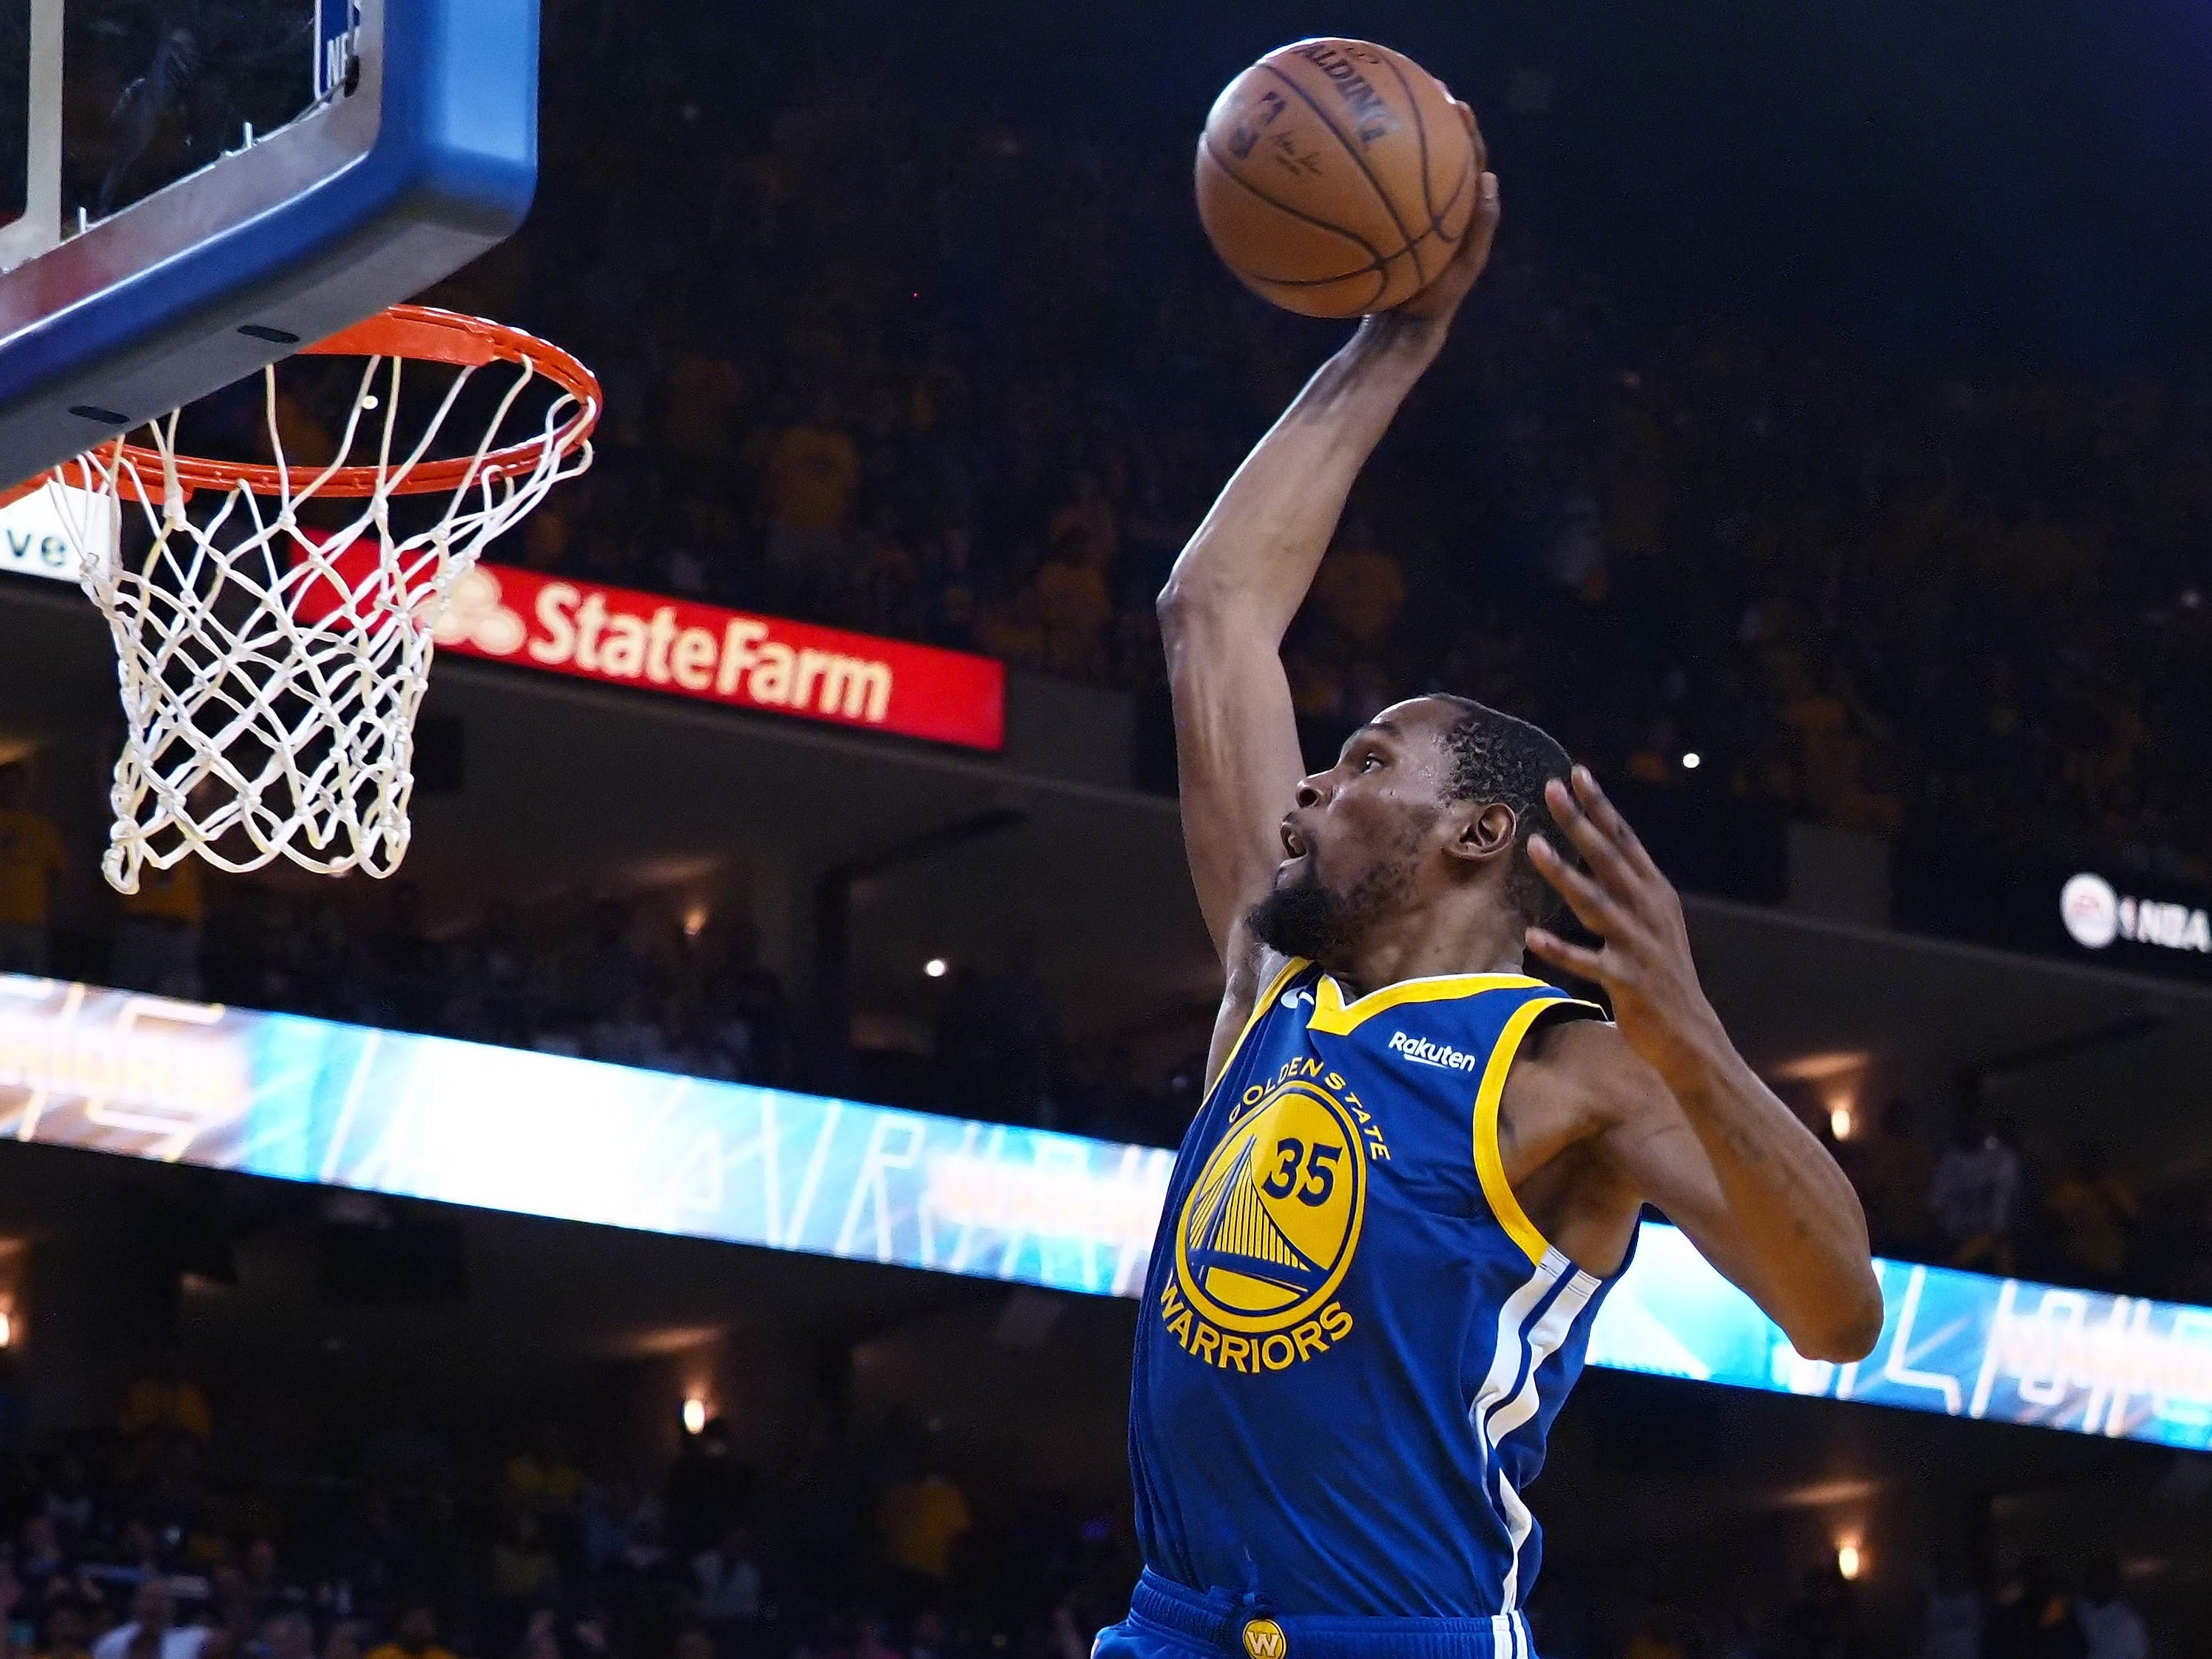 April 24: Warriors forward Kevin Durant glides to the bucket for the one-handed slam during Game 5 against the Clippers.